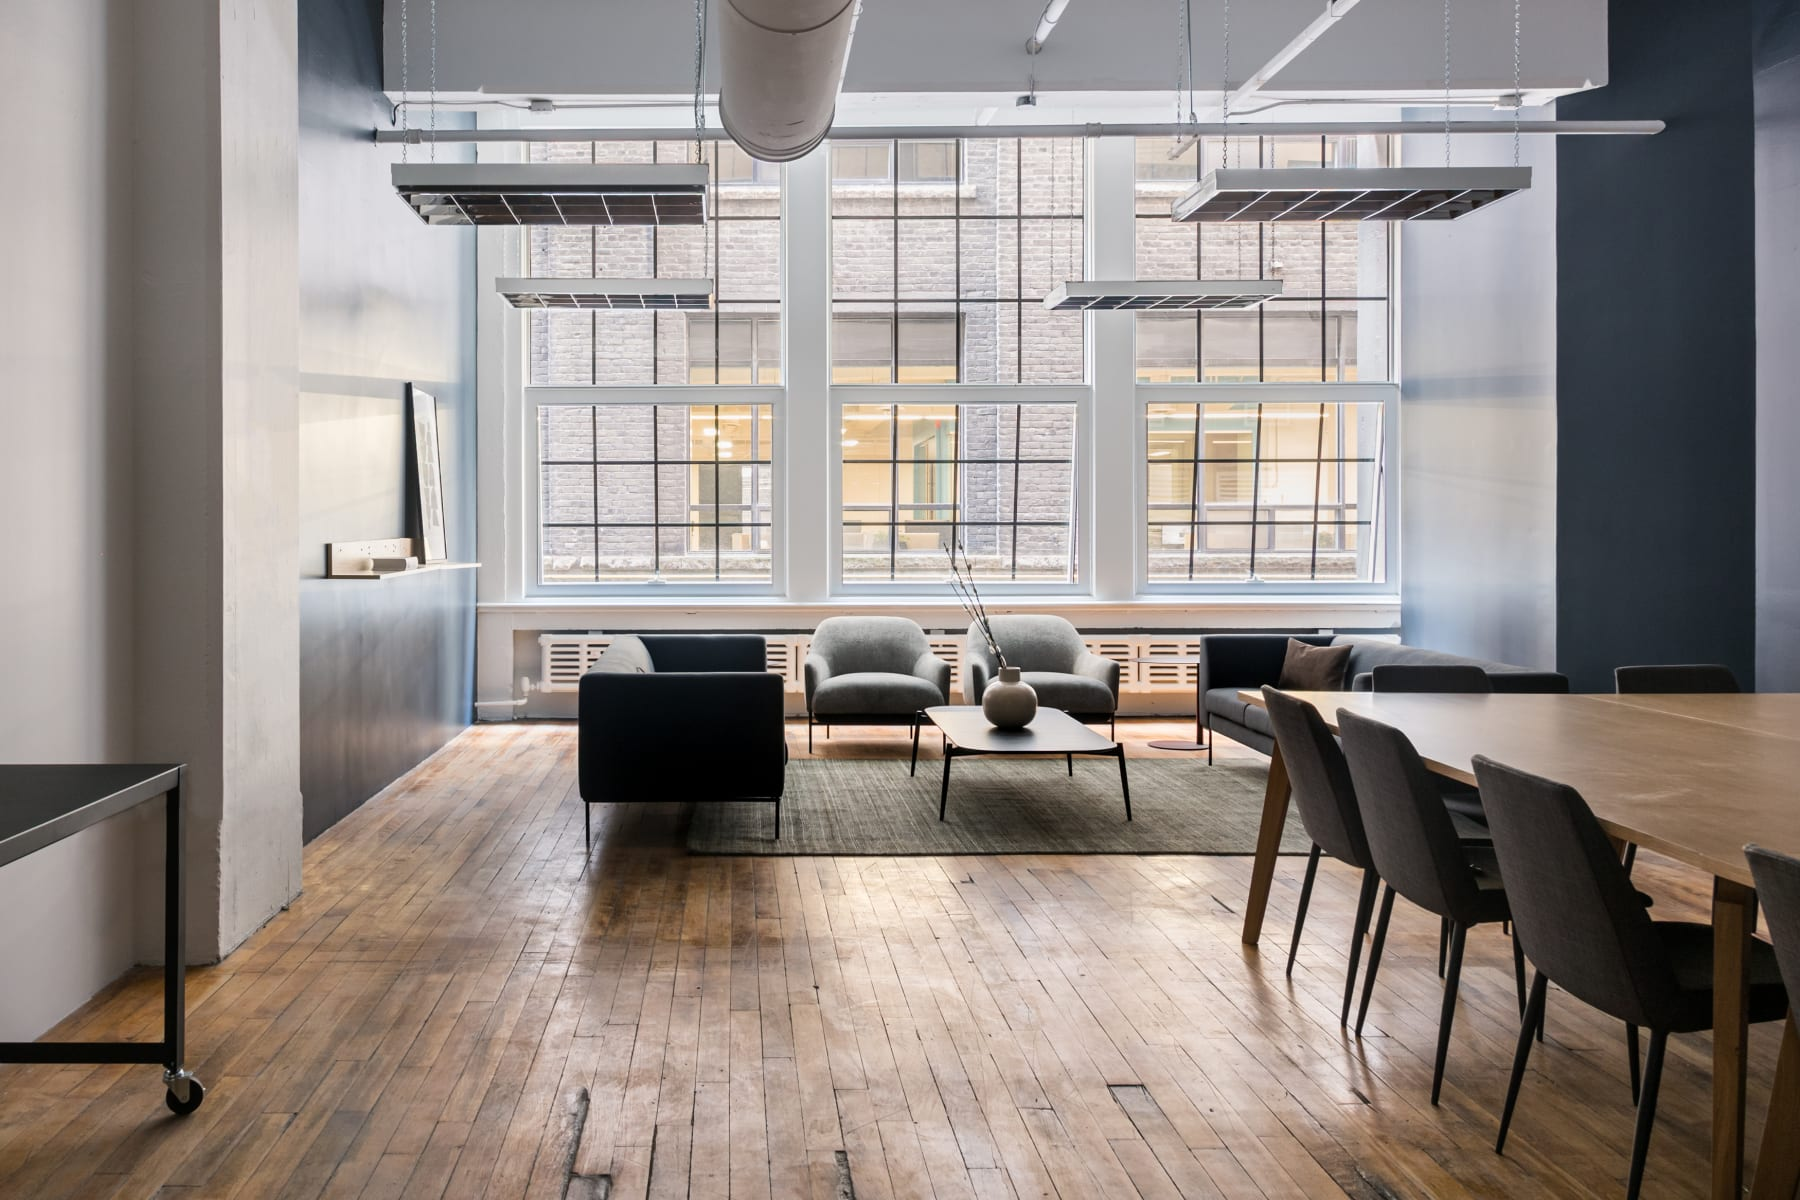 Workspace fully furnished and equipped located at 96 Spadina Ave., Toronto.